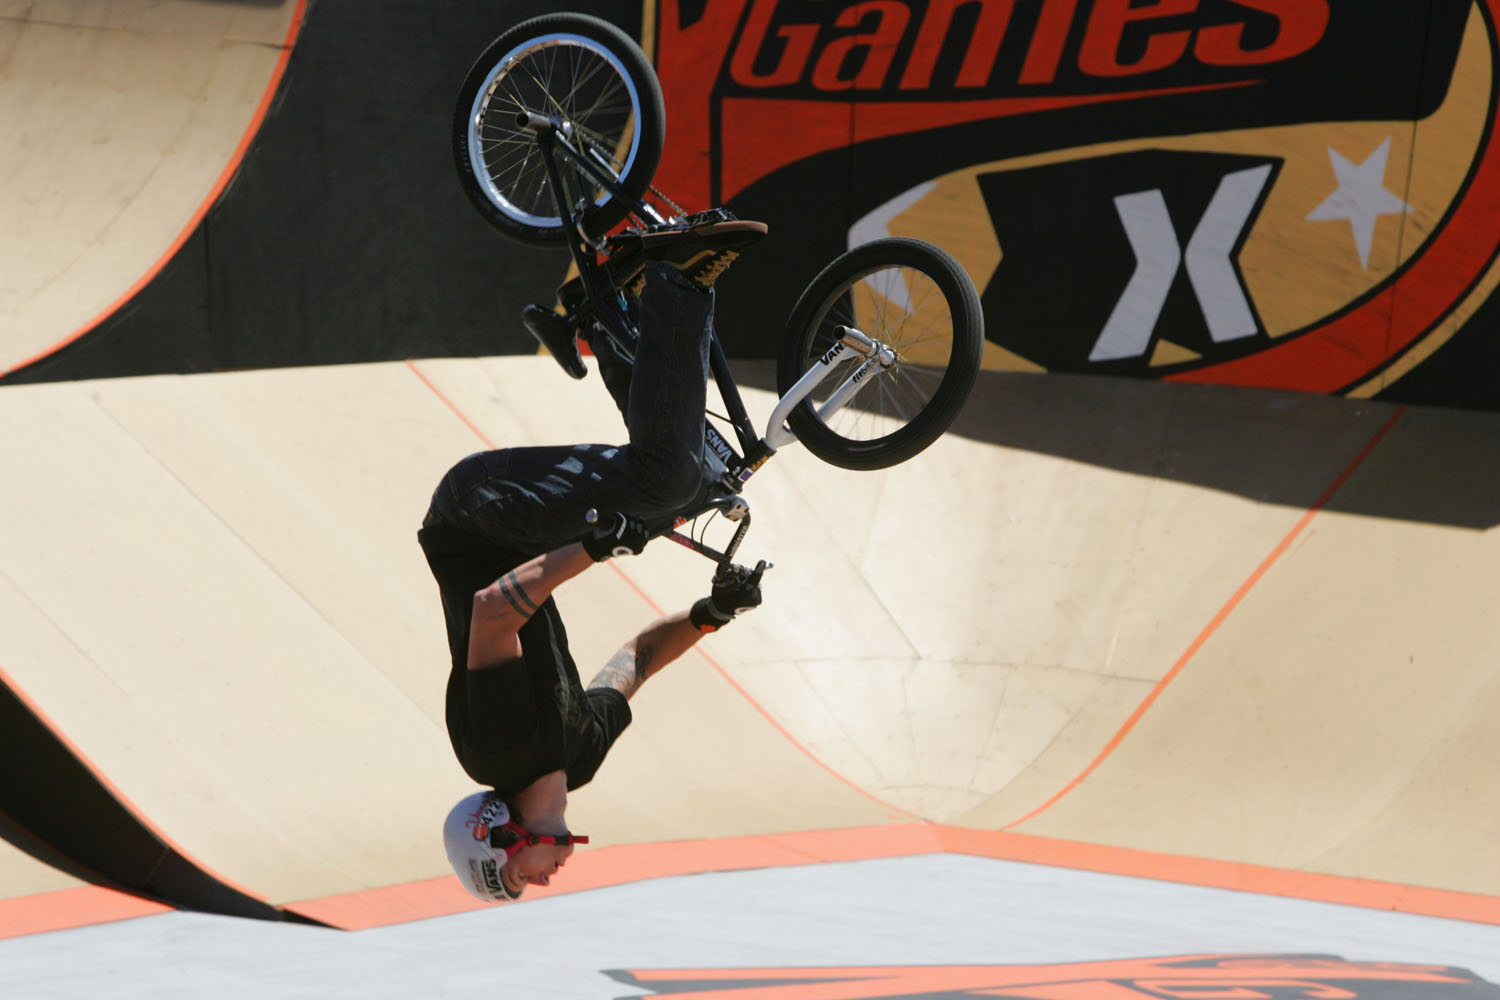 Ryan Guettler competes during the Bike Stunt Park competition at X Games 11 on August 7, 2004 at the Staples Center in Los Angeles, California.